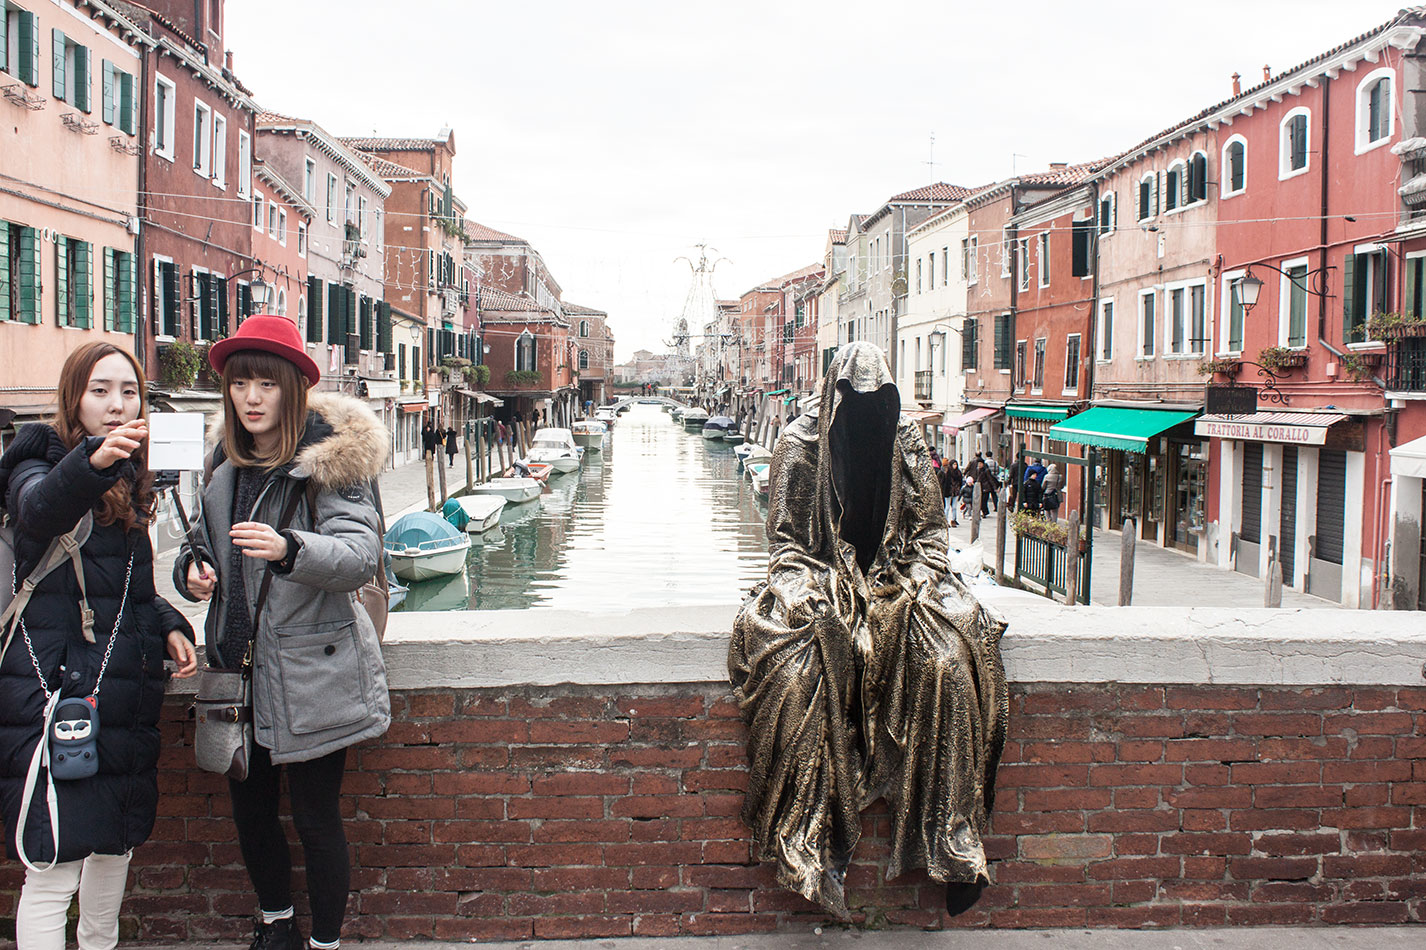 Italia-Venice-Murano-Berengo-glas-studio-glasstress-guardians-of-time-by-Manfred-Kili-Kielnhofer-contemporary-art-design-show-7155